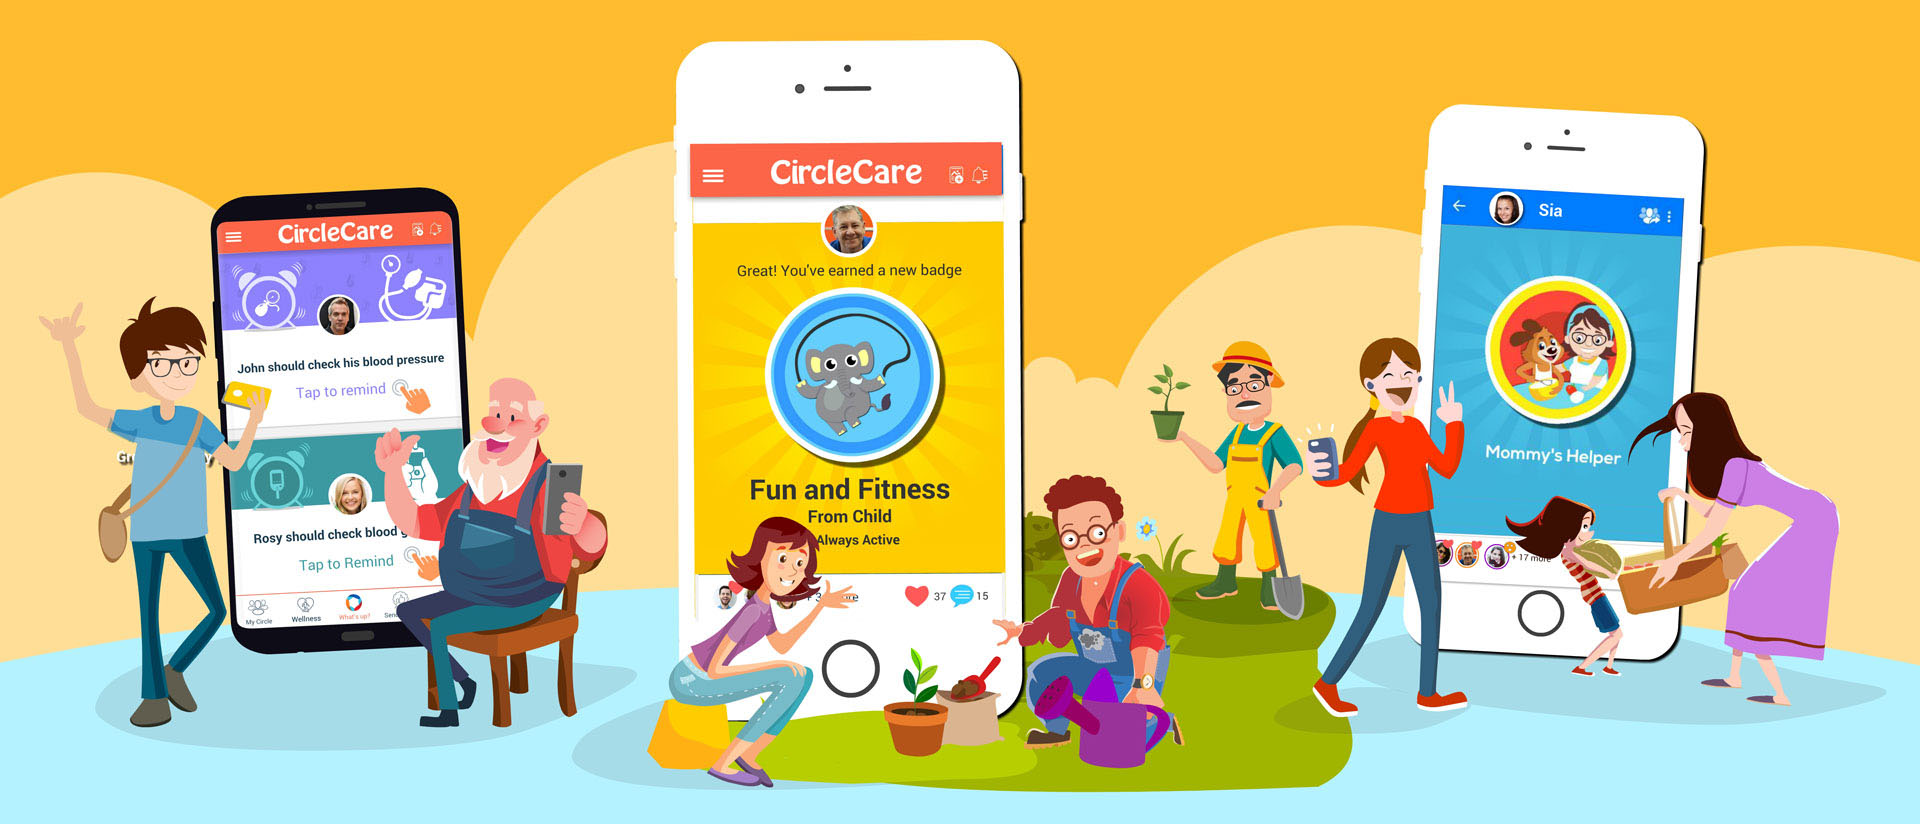 CircleCare-kid-safe-platform-health-wellness-app